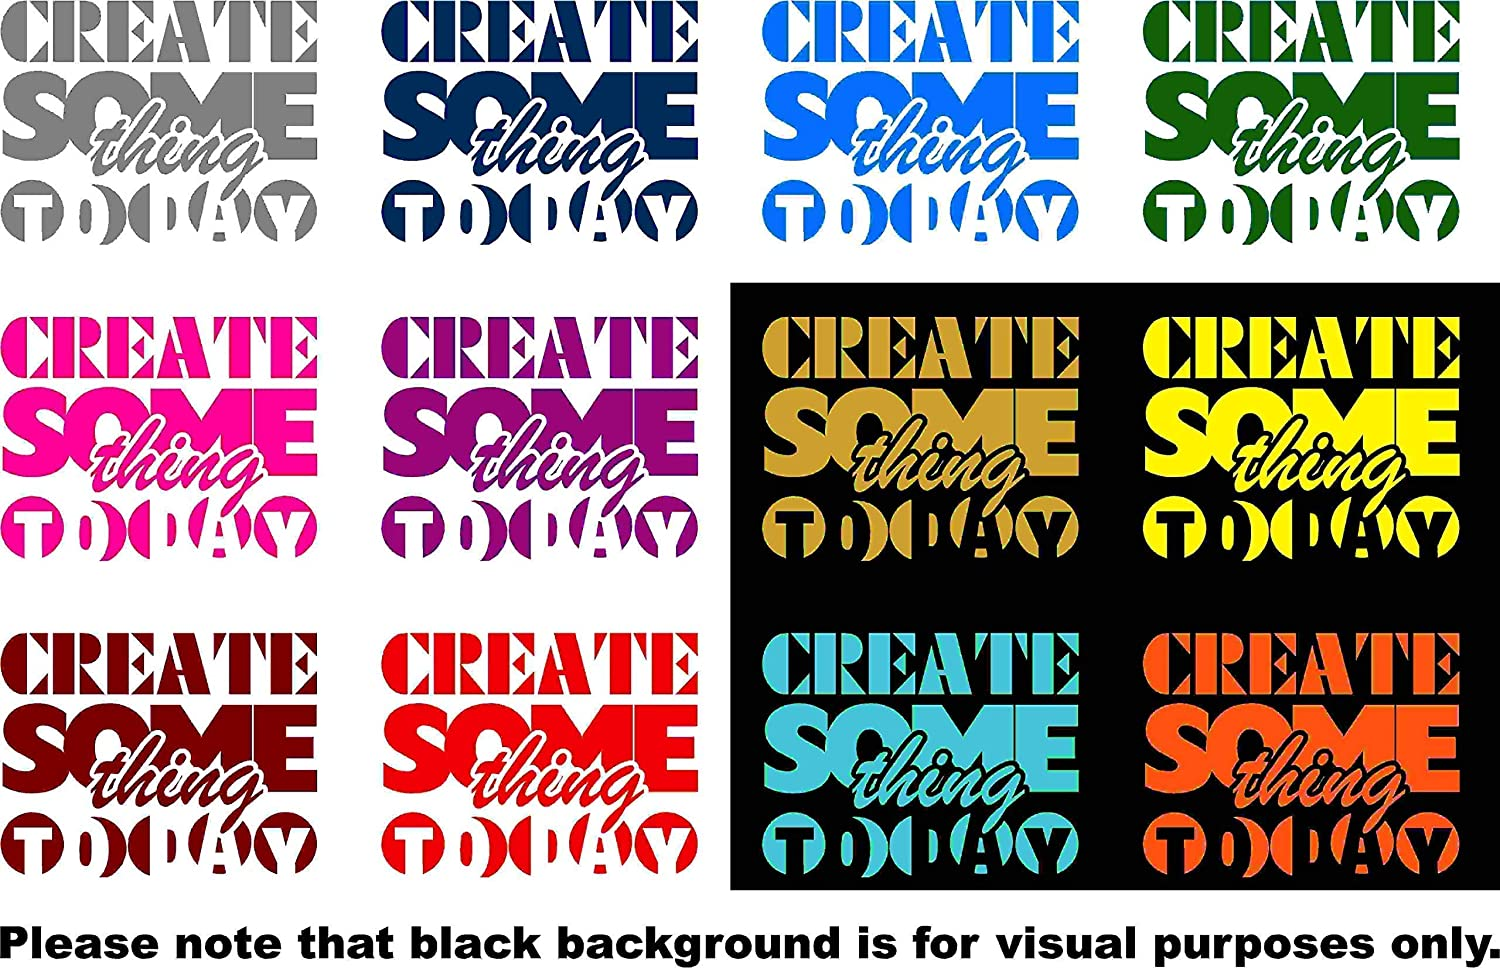 Create Something Today Quote Car Window Tumblers Wall Decal Sticker Vinyl Laptops Cellphones Phones Tablets Ipads Helmets Motorcycles Computer Towers V and T Gifts